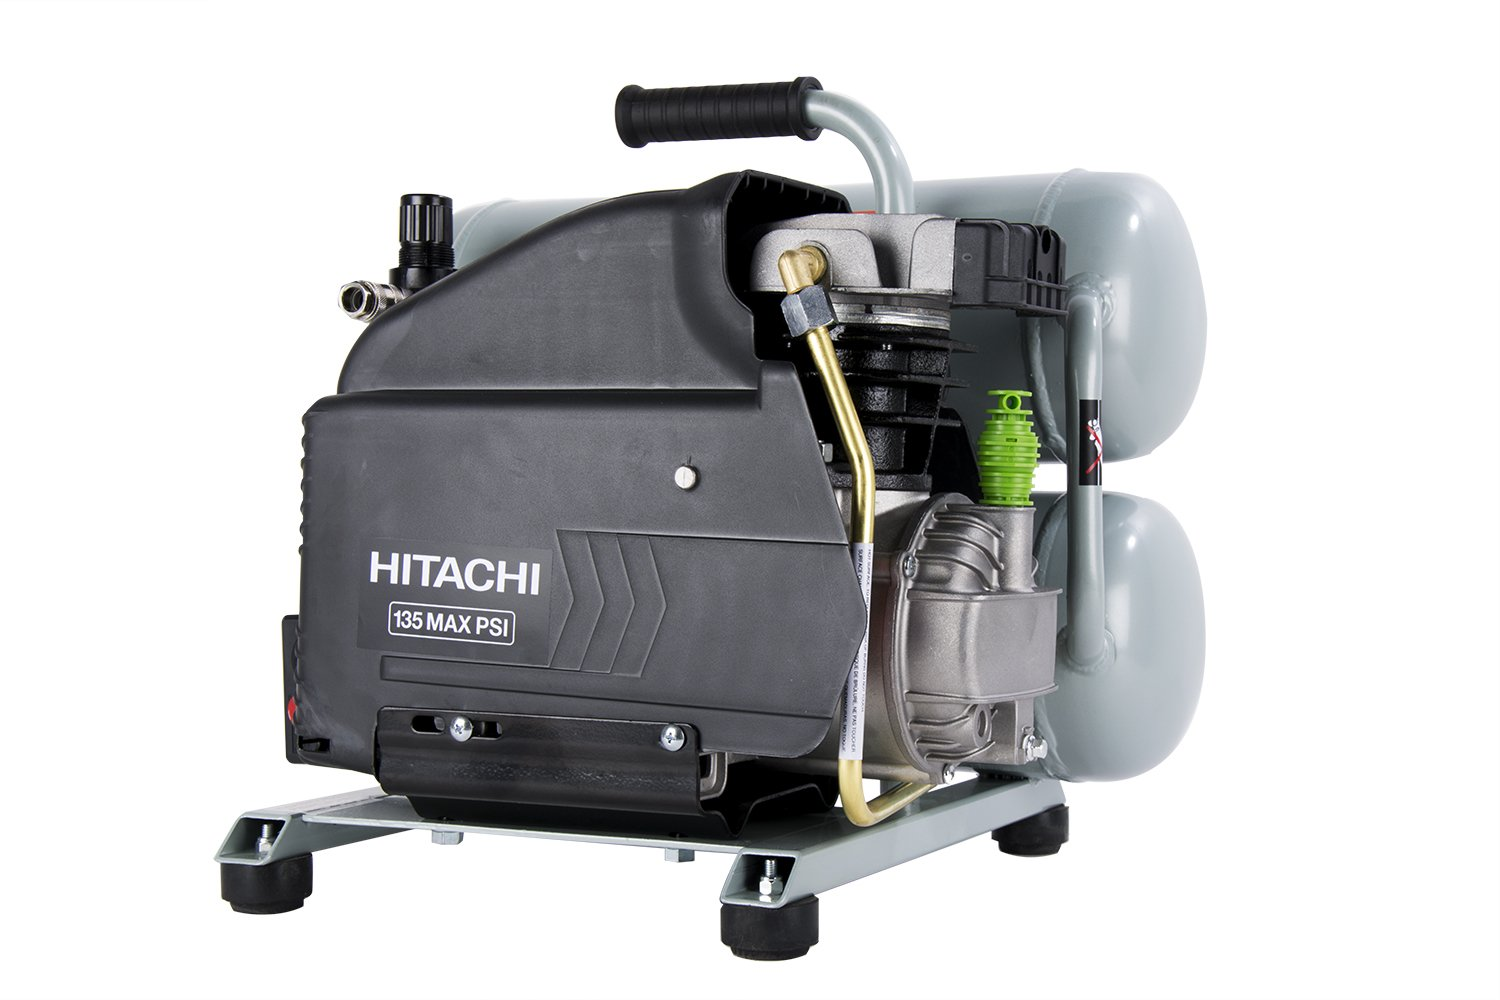 hitachi pancake air compressor. hitachi ec99s 4-gallon portable electric twin stack hot dog air compressor - amazon.com pancake i